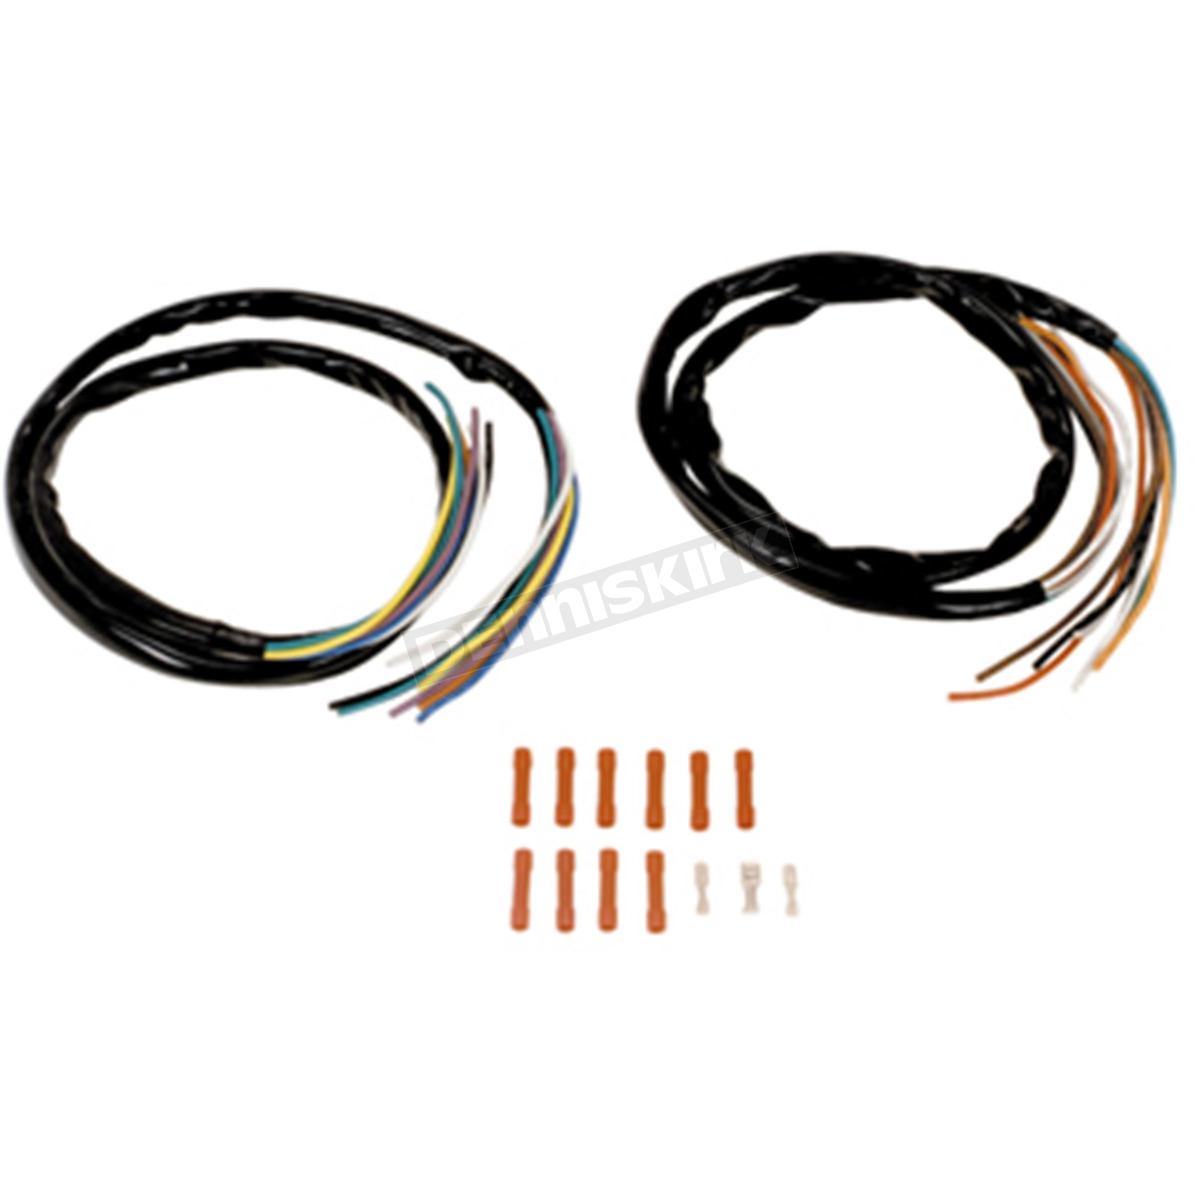 Handlebar Extended Wiring Kit - 12092 on